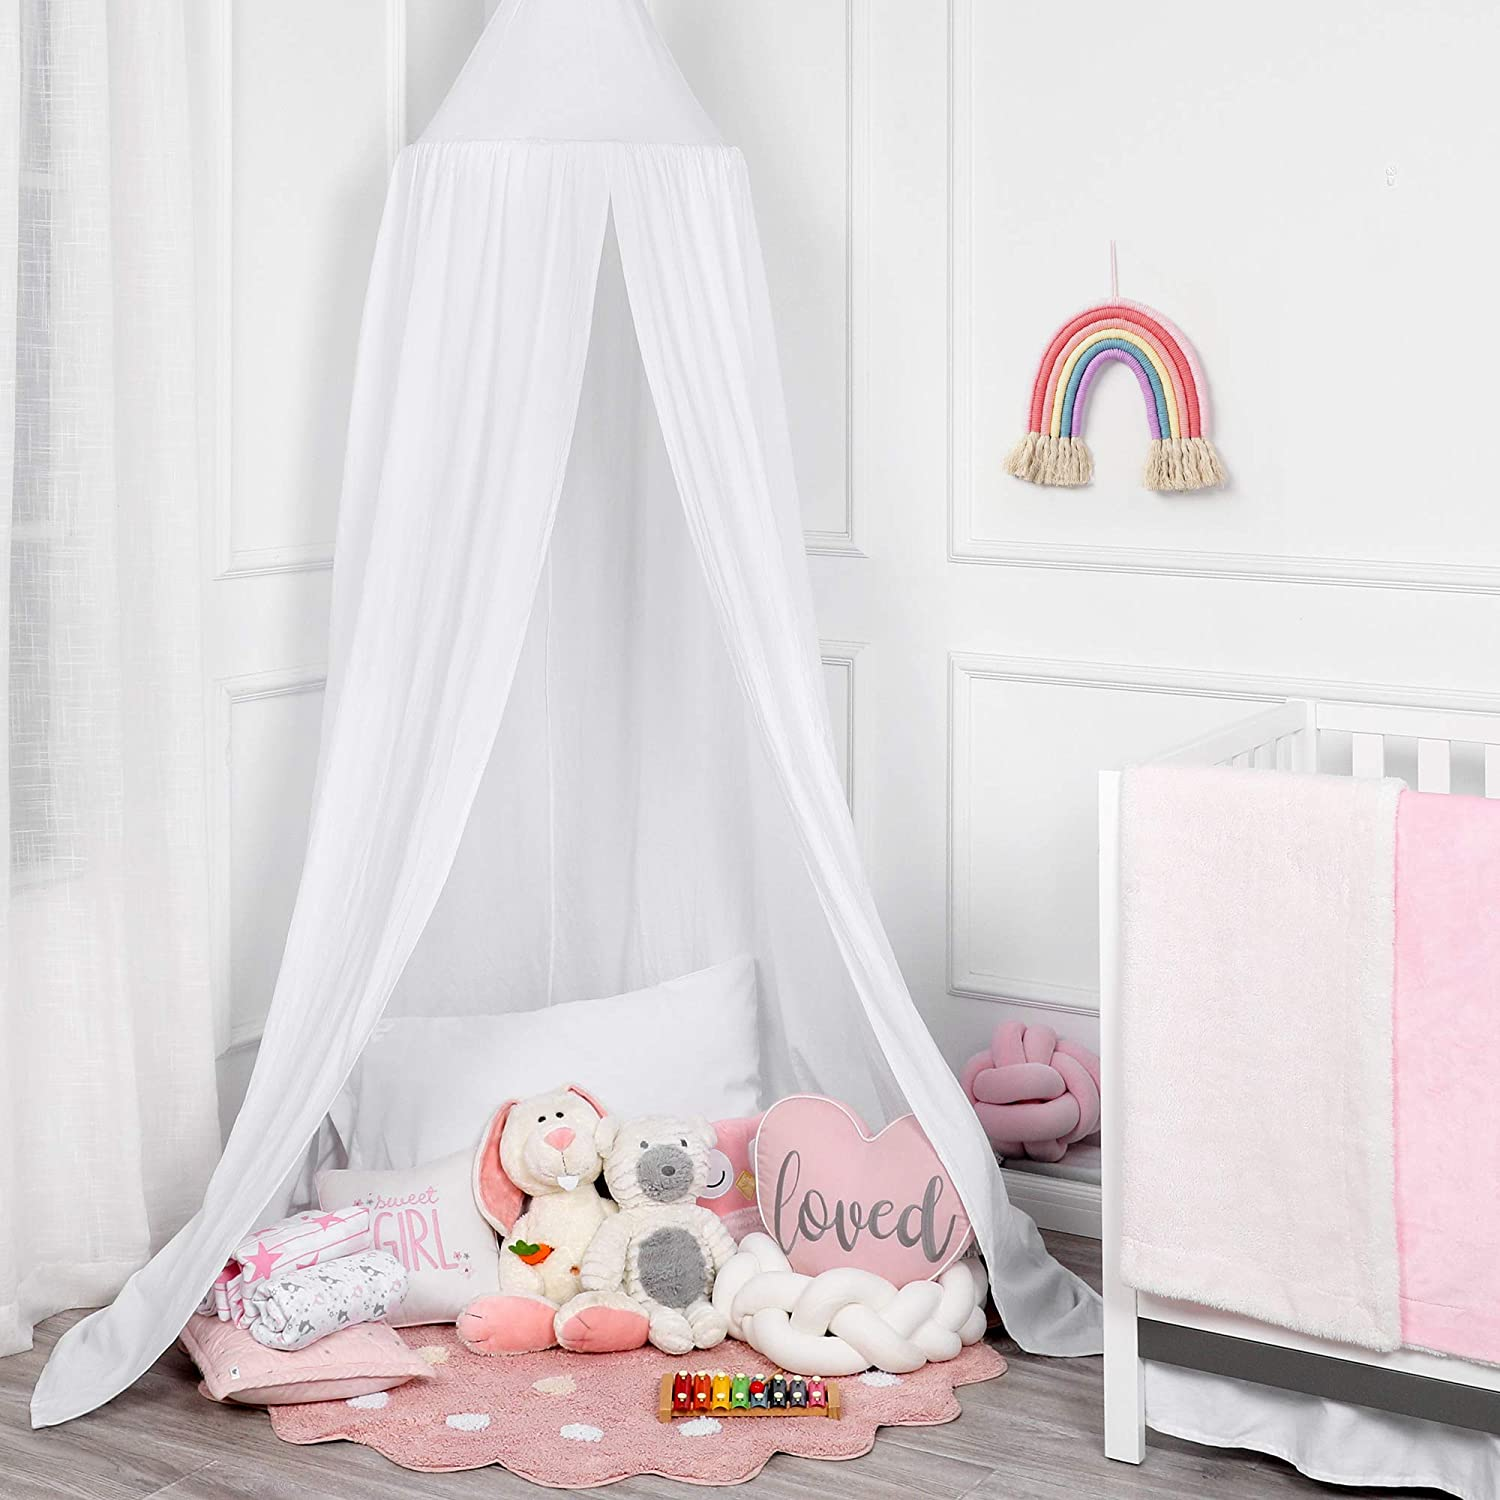 TILLYOU Princess Cotton Collection Nursery Bed Canopy for Girls, Fits Standard/Mini Baby Crib, Toddler Bed, Reading & Playing Nook, Hanging Game Tent for Kids Bedroom, Round Dome Mosquito Net, White